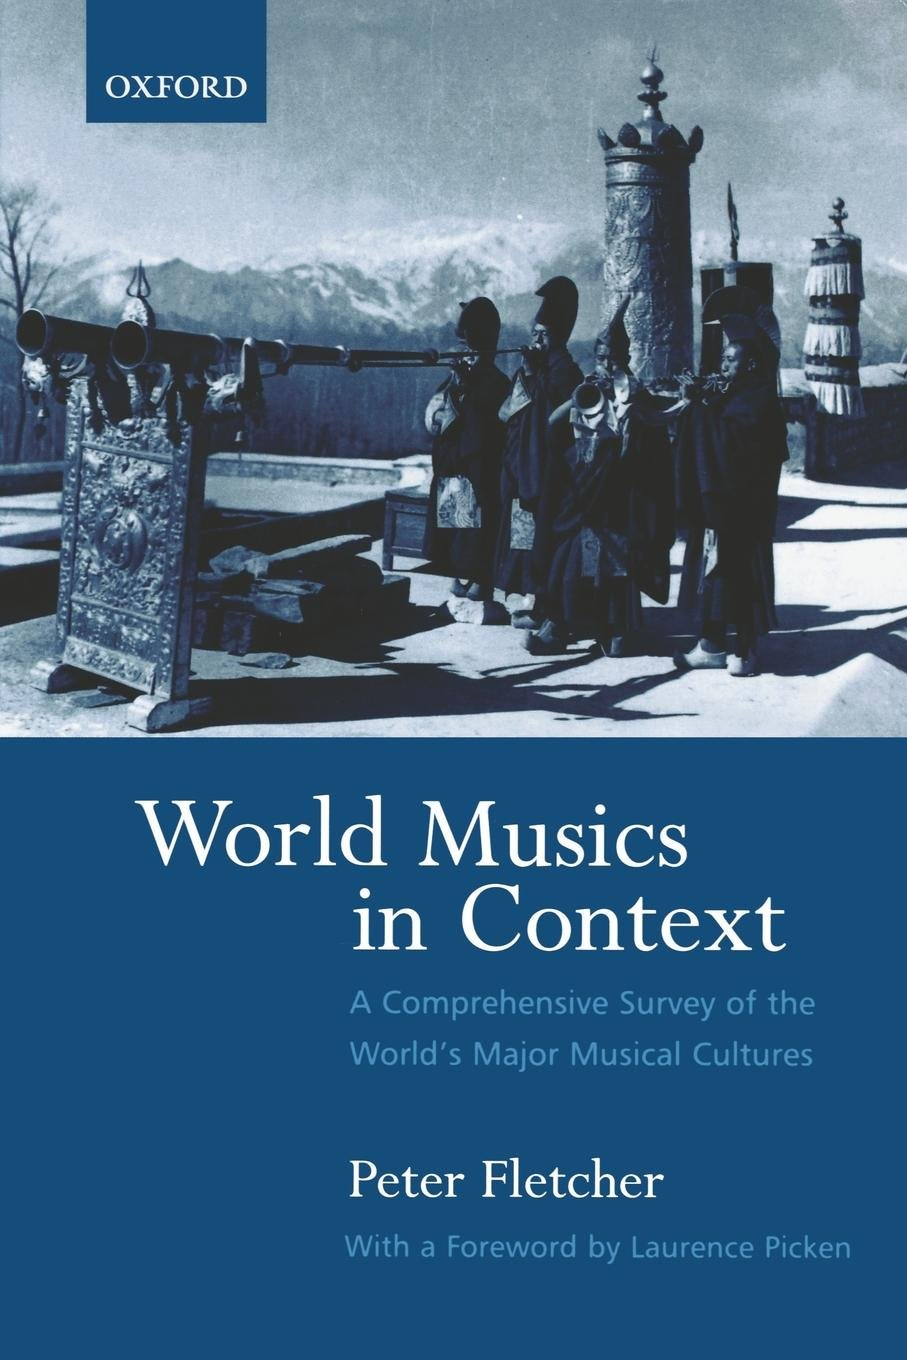 World Musics in Context: A Comprehensive Survey of the World's Major Musical Cultures pdf